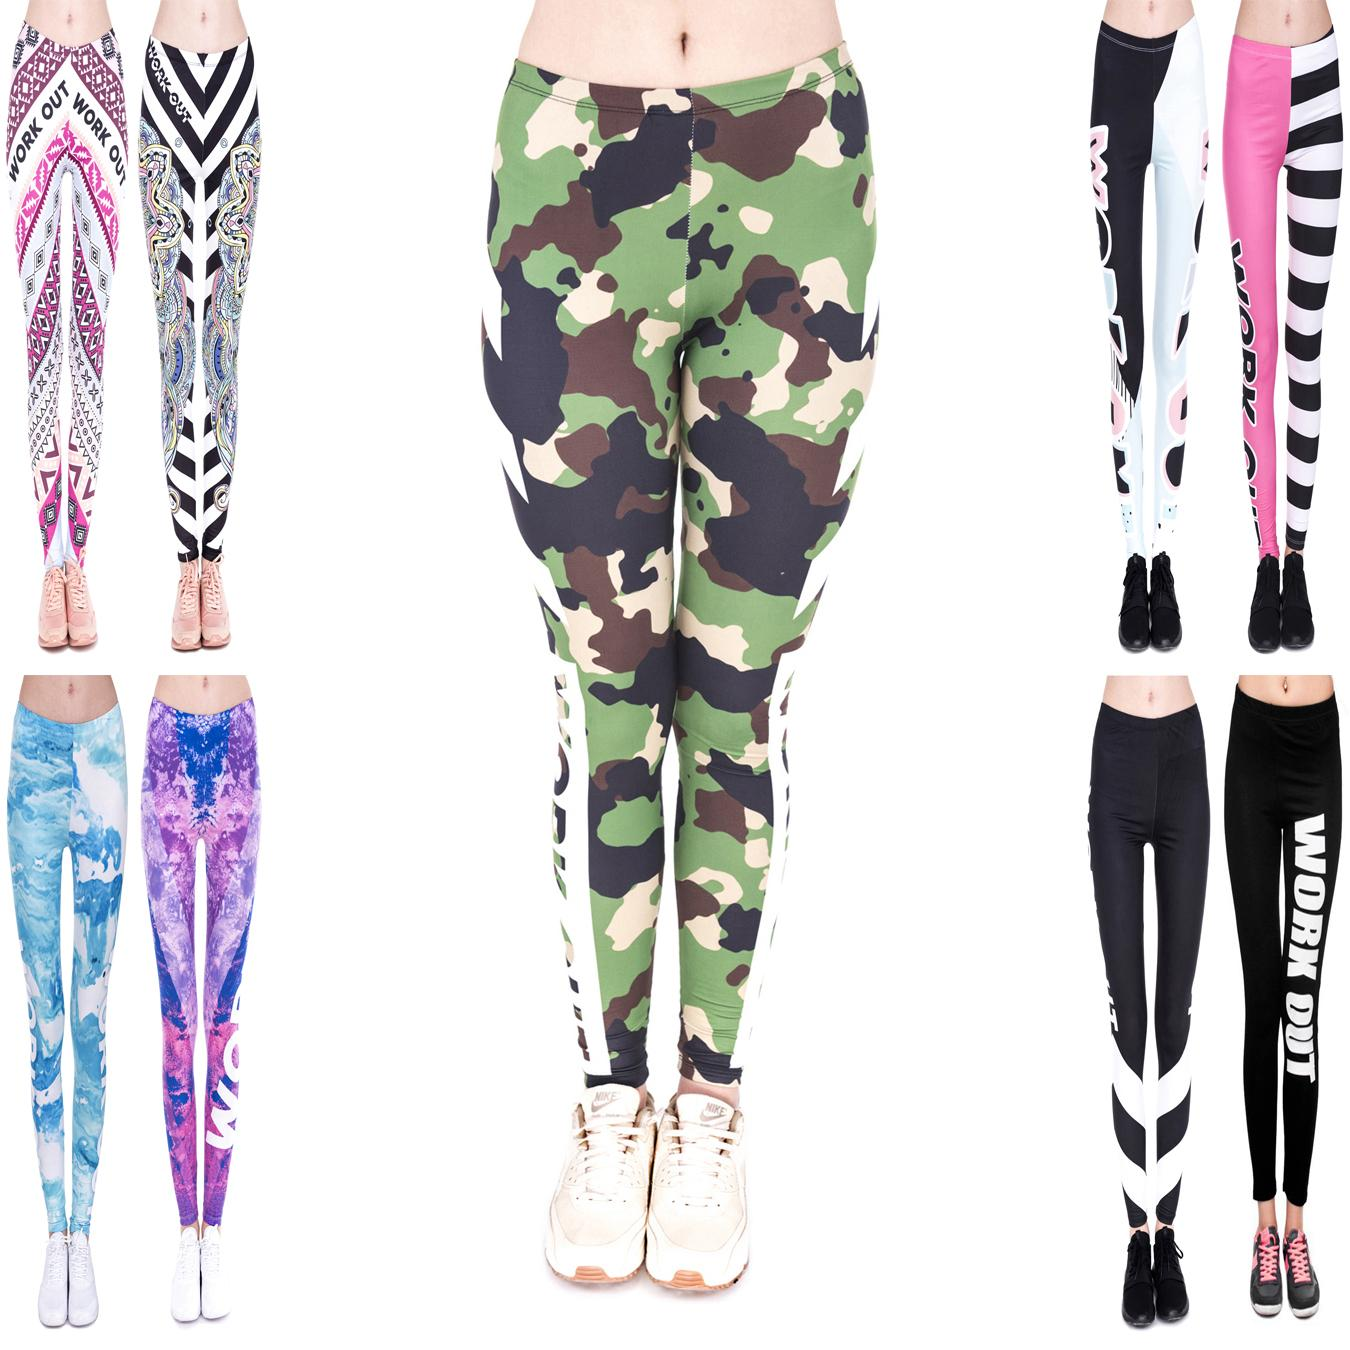 Women Leggings 9 Styles Workout Camo Camouflage 3D Graphic Print Lady Capris Soft Yoga Pants Girl Pencil Fit Runner Casual Trousers (JL007)